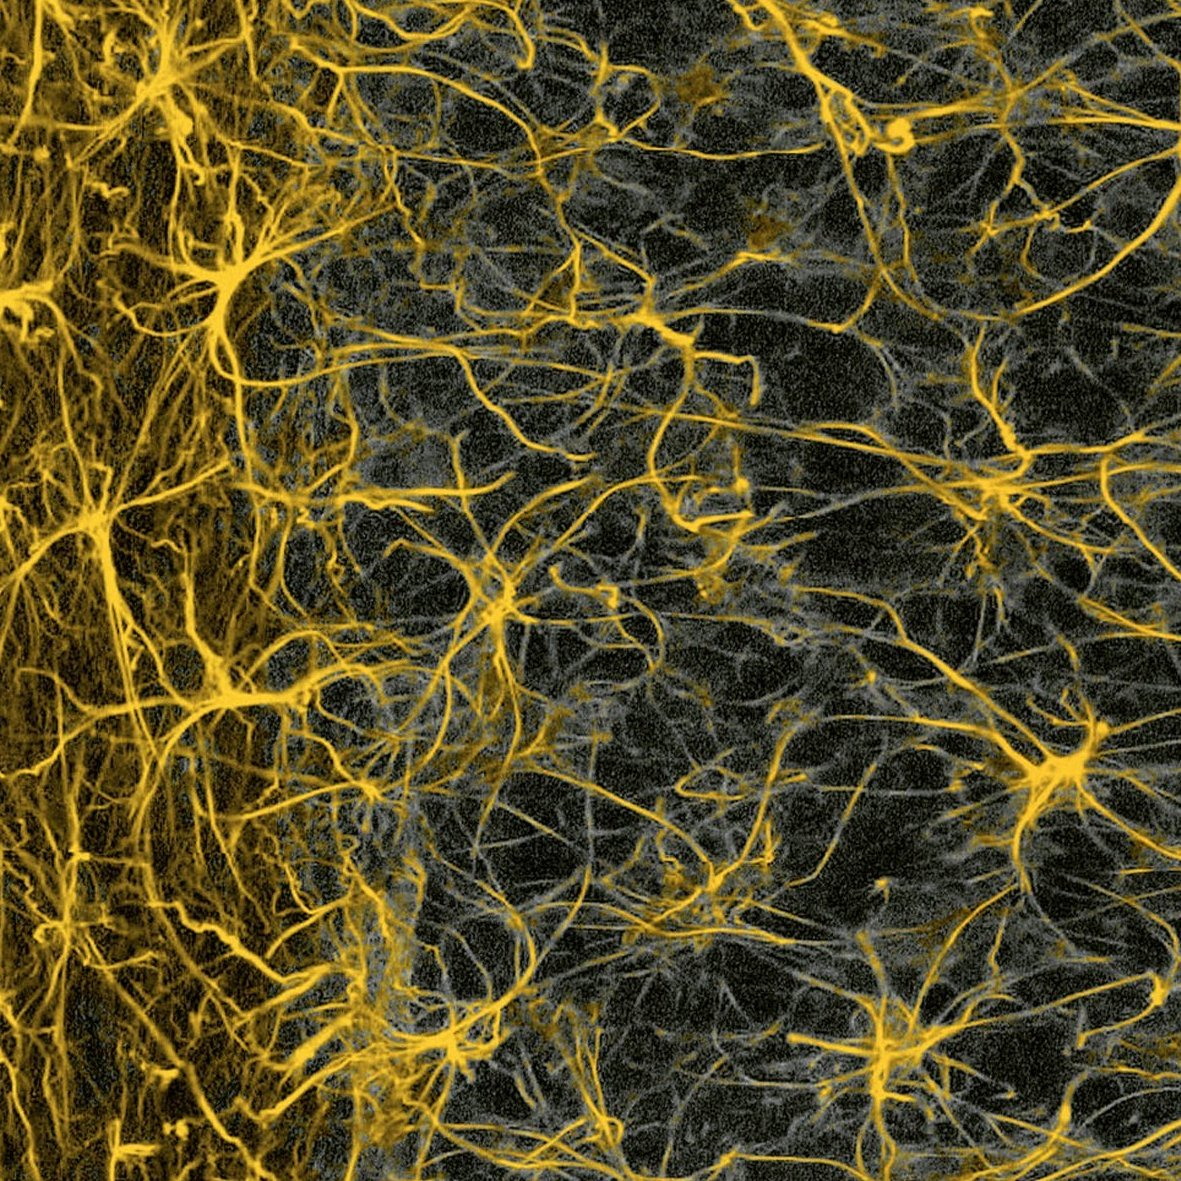 Another panel of glial cells